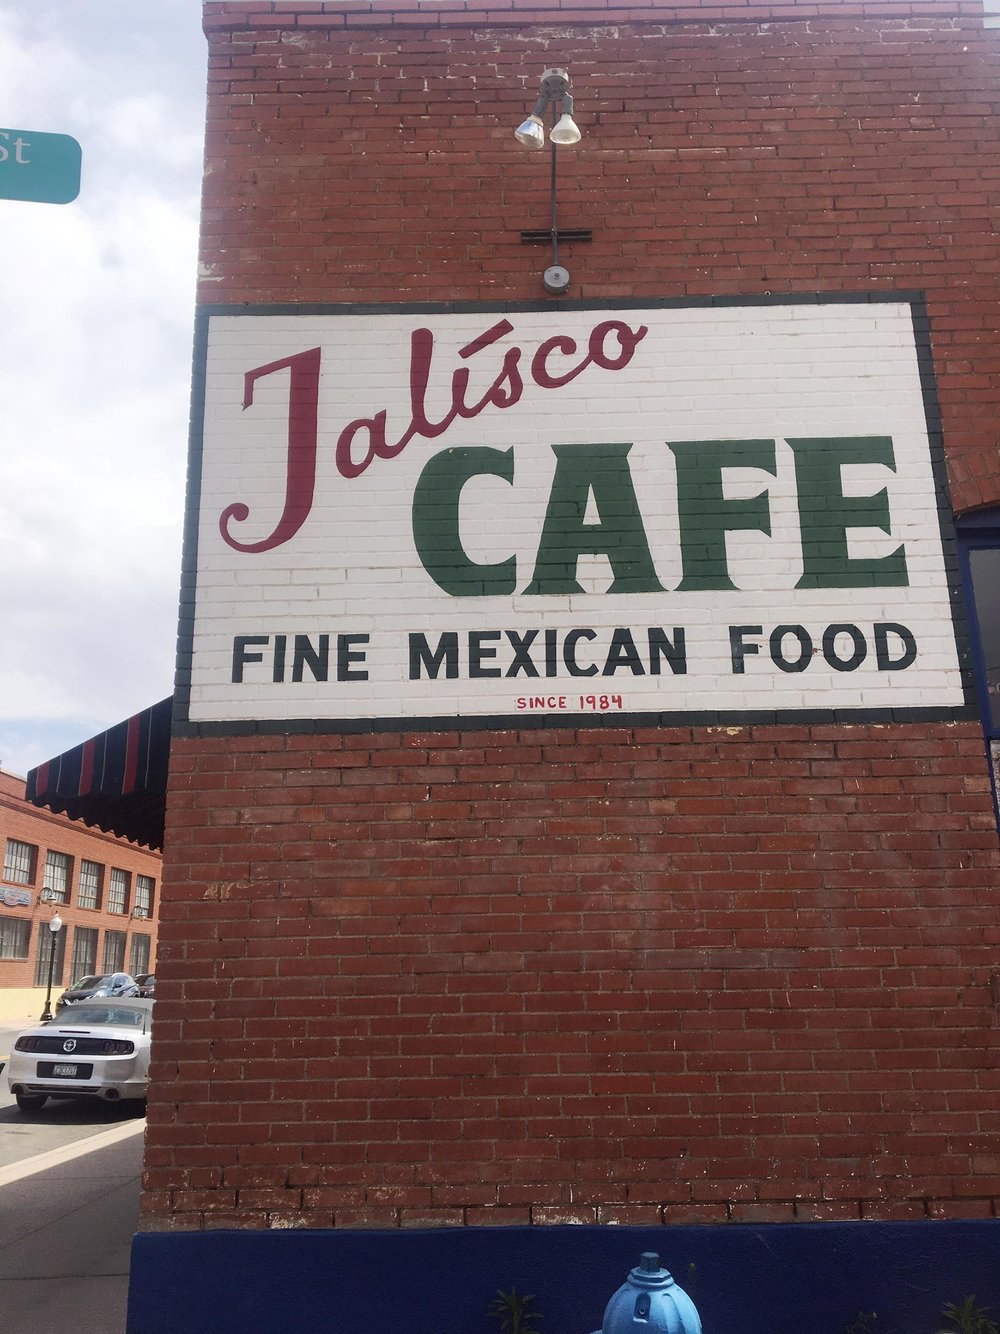 Silver City Is The Hidden Gem You Need To Visit | Jalisco Cafe | jumpseatjenny | Silver City, New Mexico